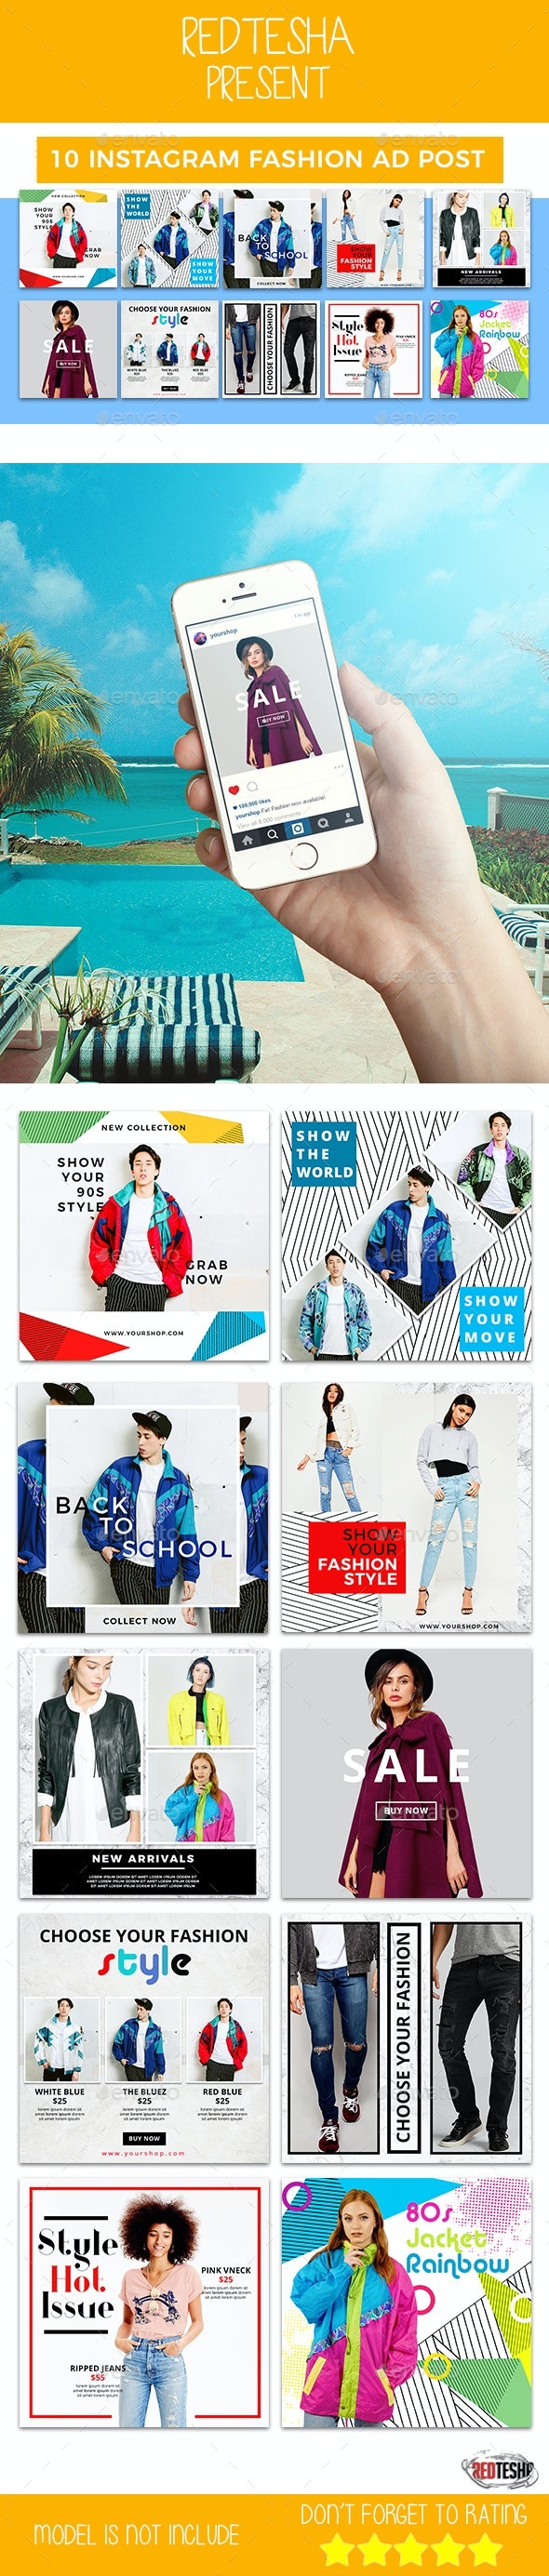 Instagram Fashion Banner #15 - Banners & Ads Web Elements